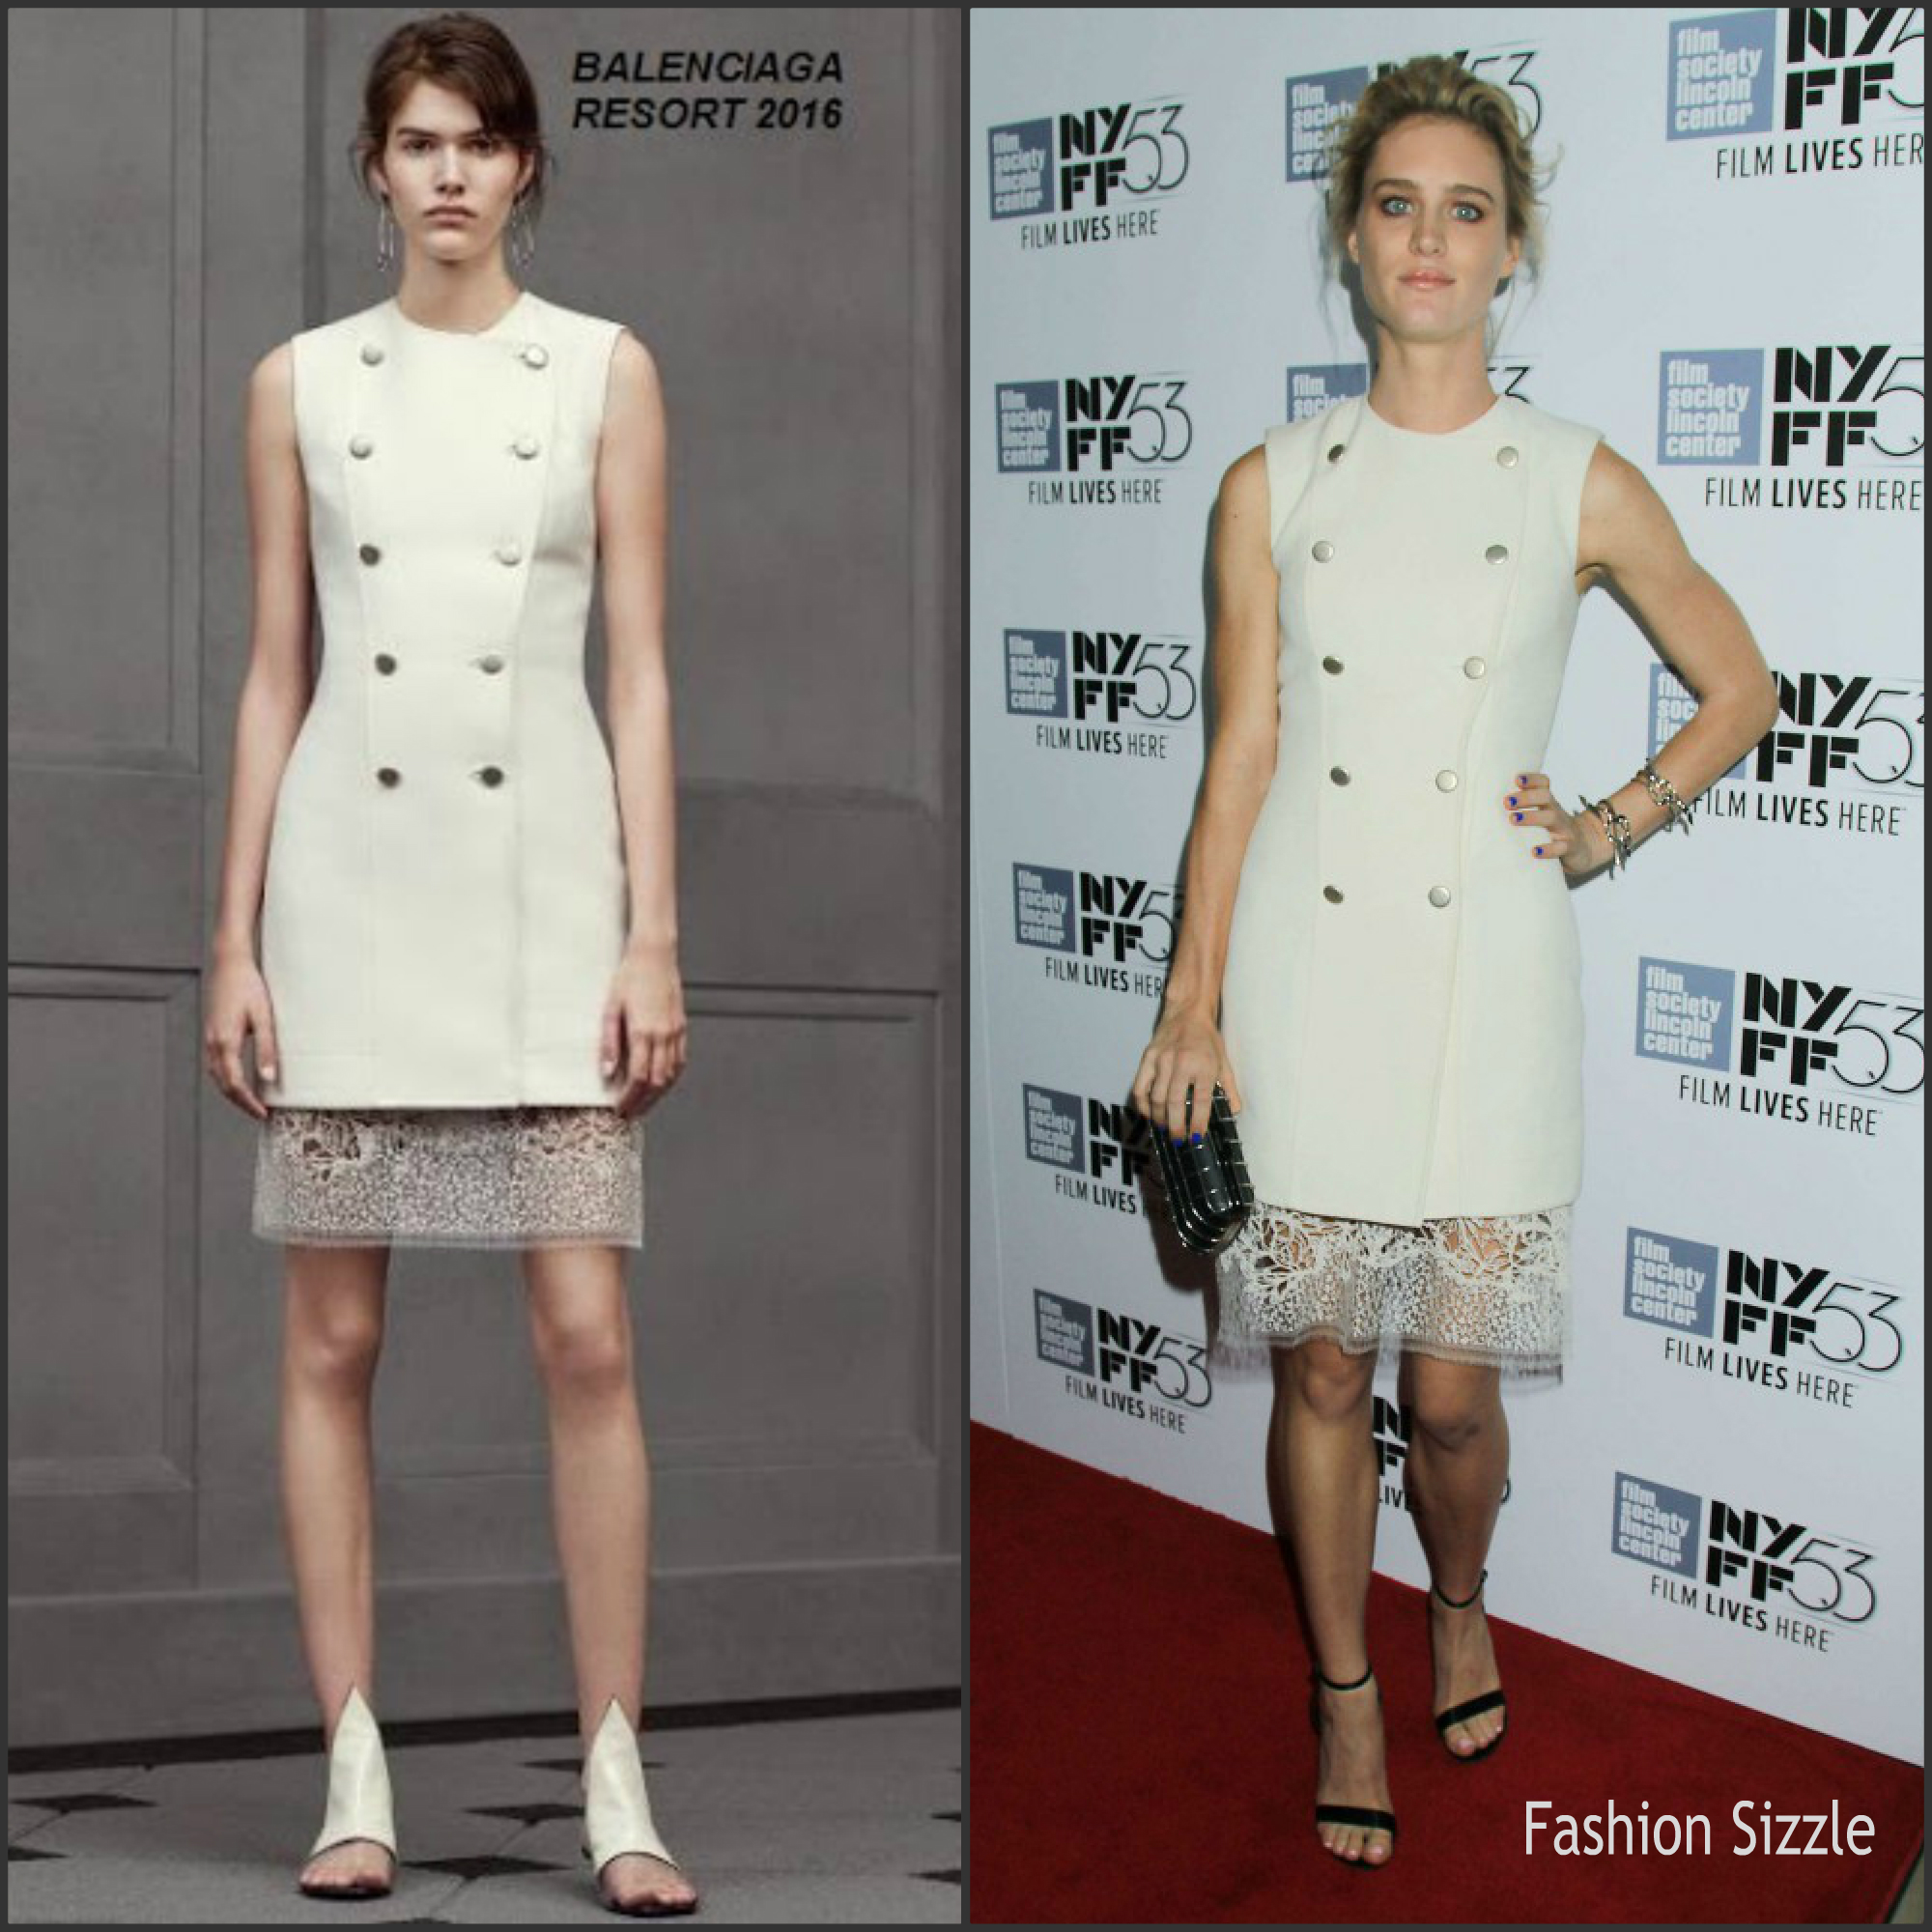 mackenzie-davis-in-balenciaga-at-the-martian-53rd-new-york-film-festival-premiere